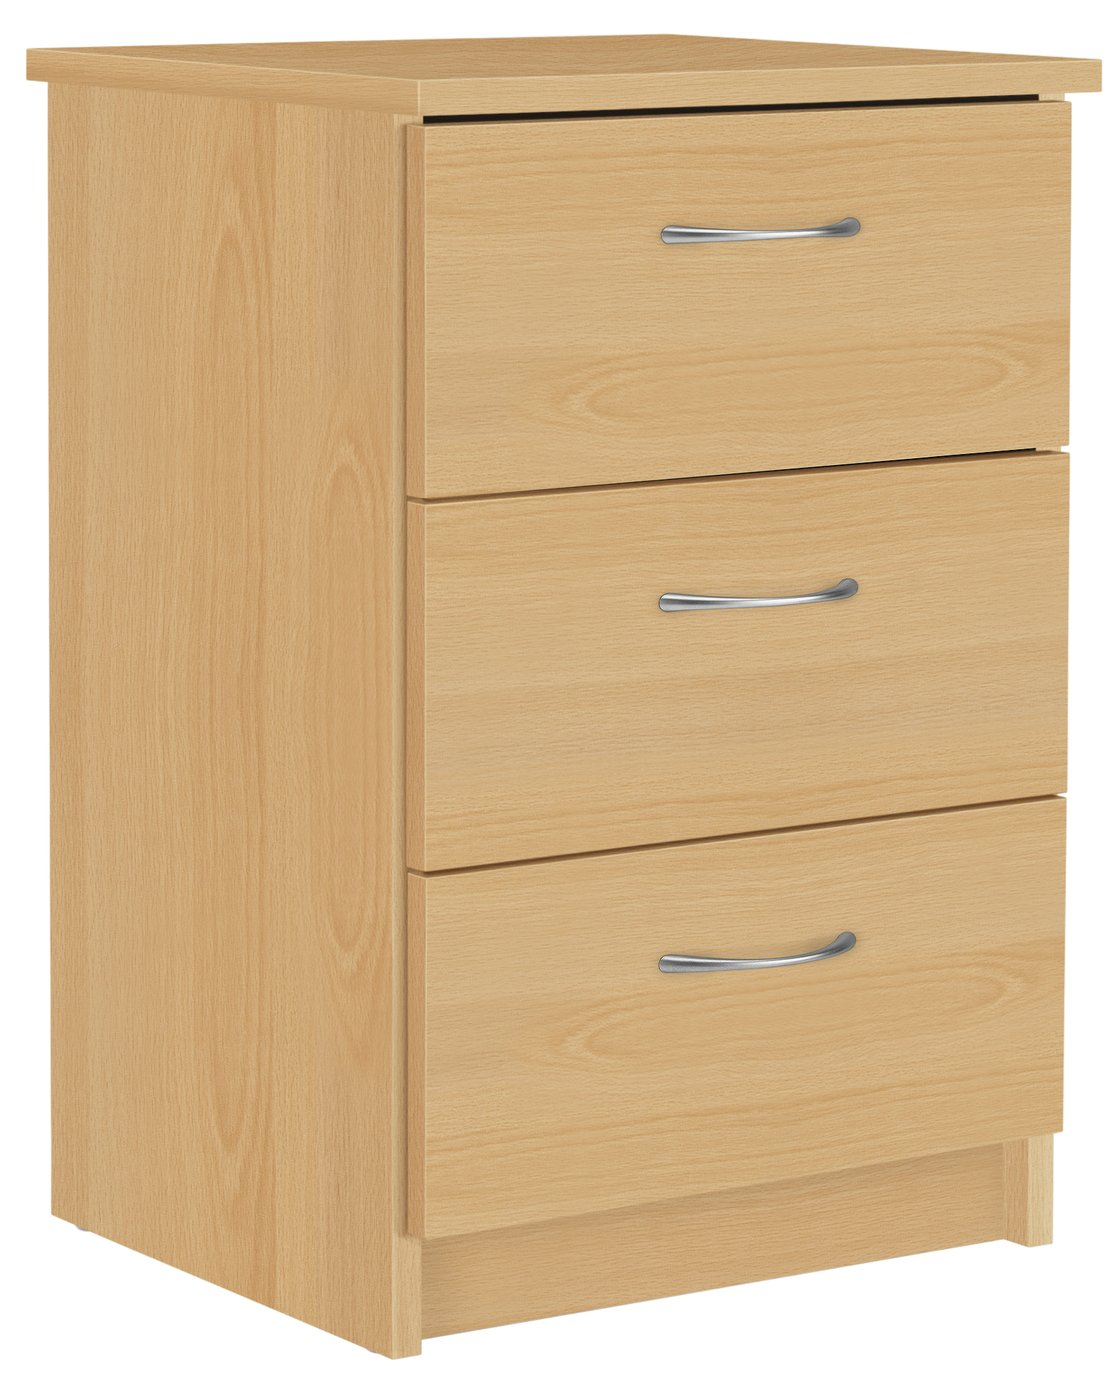 Argos Home Cheval 3 Drawer Bedside Chest